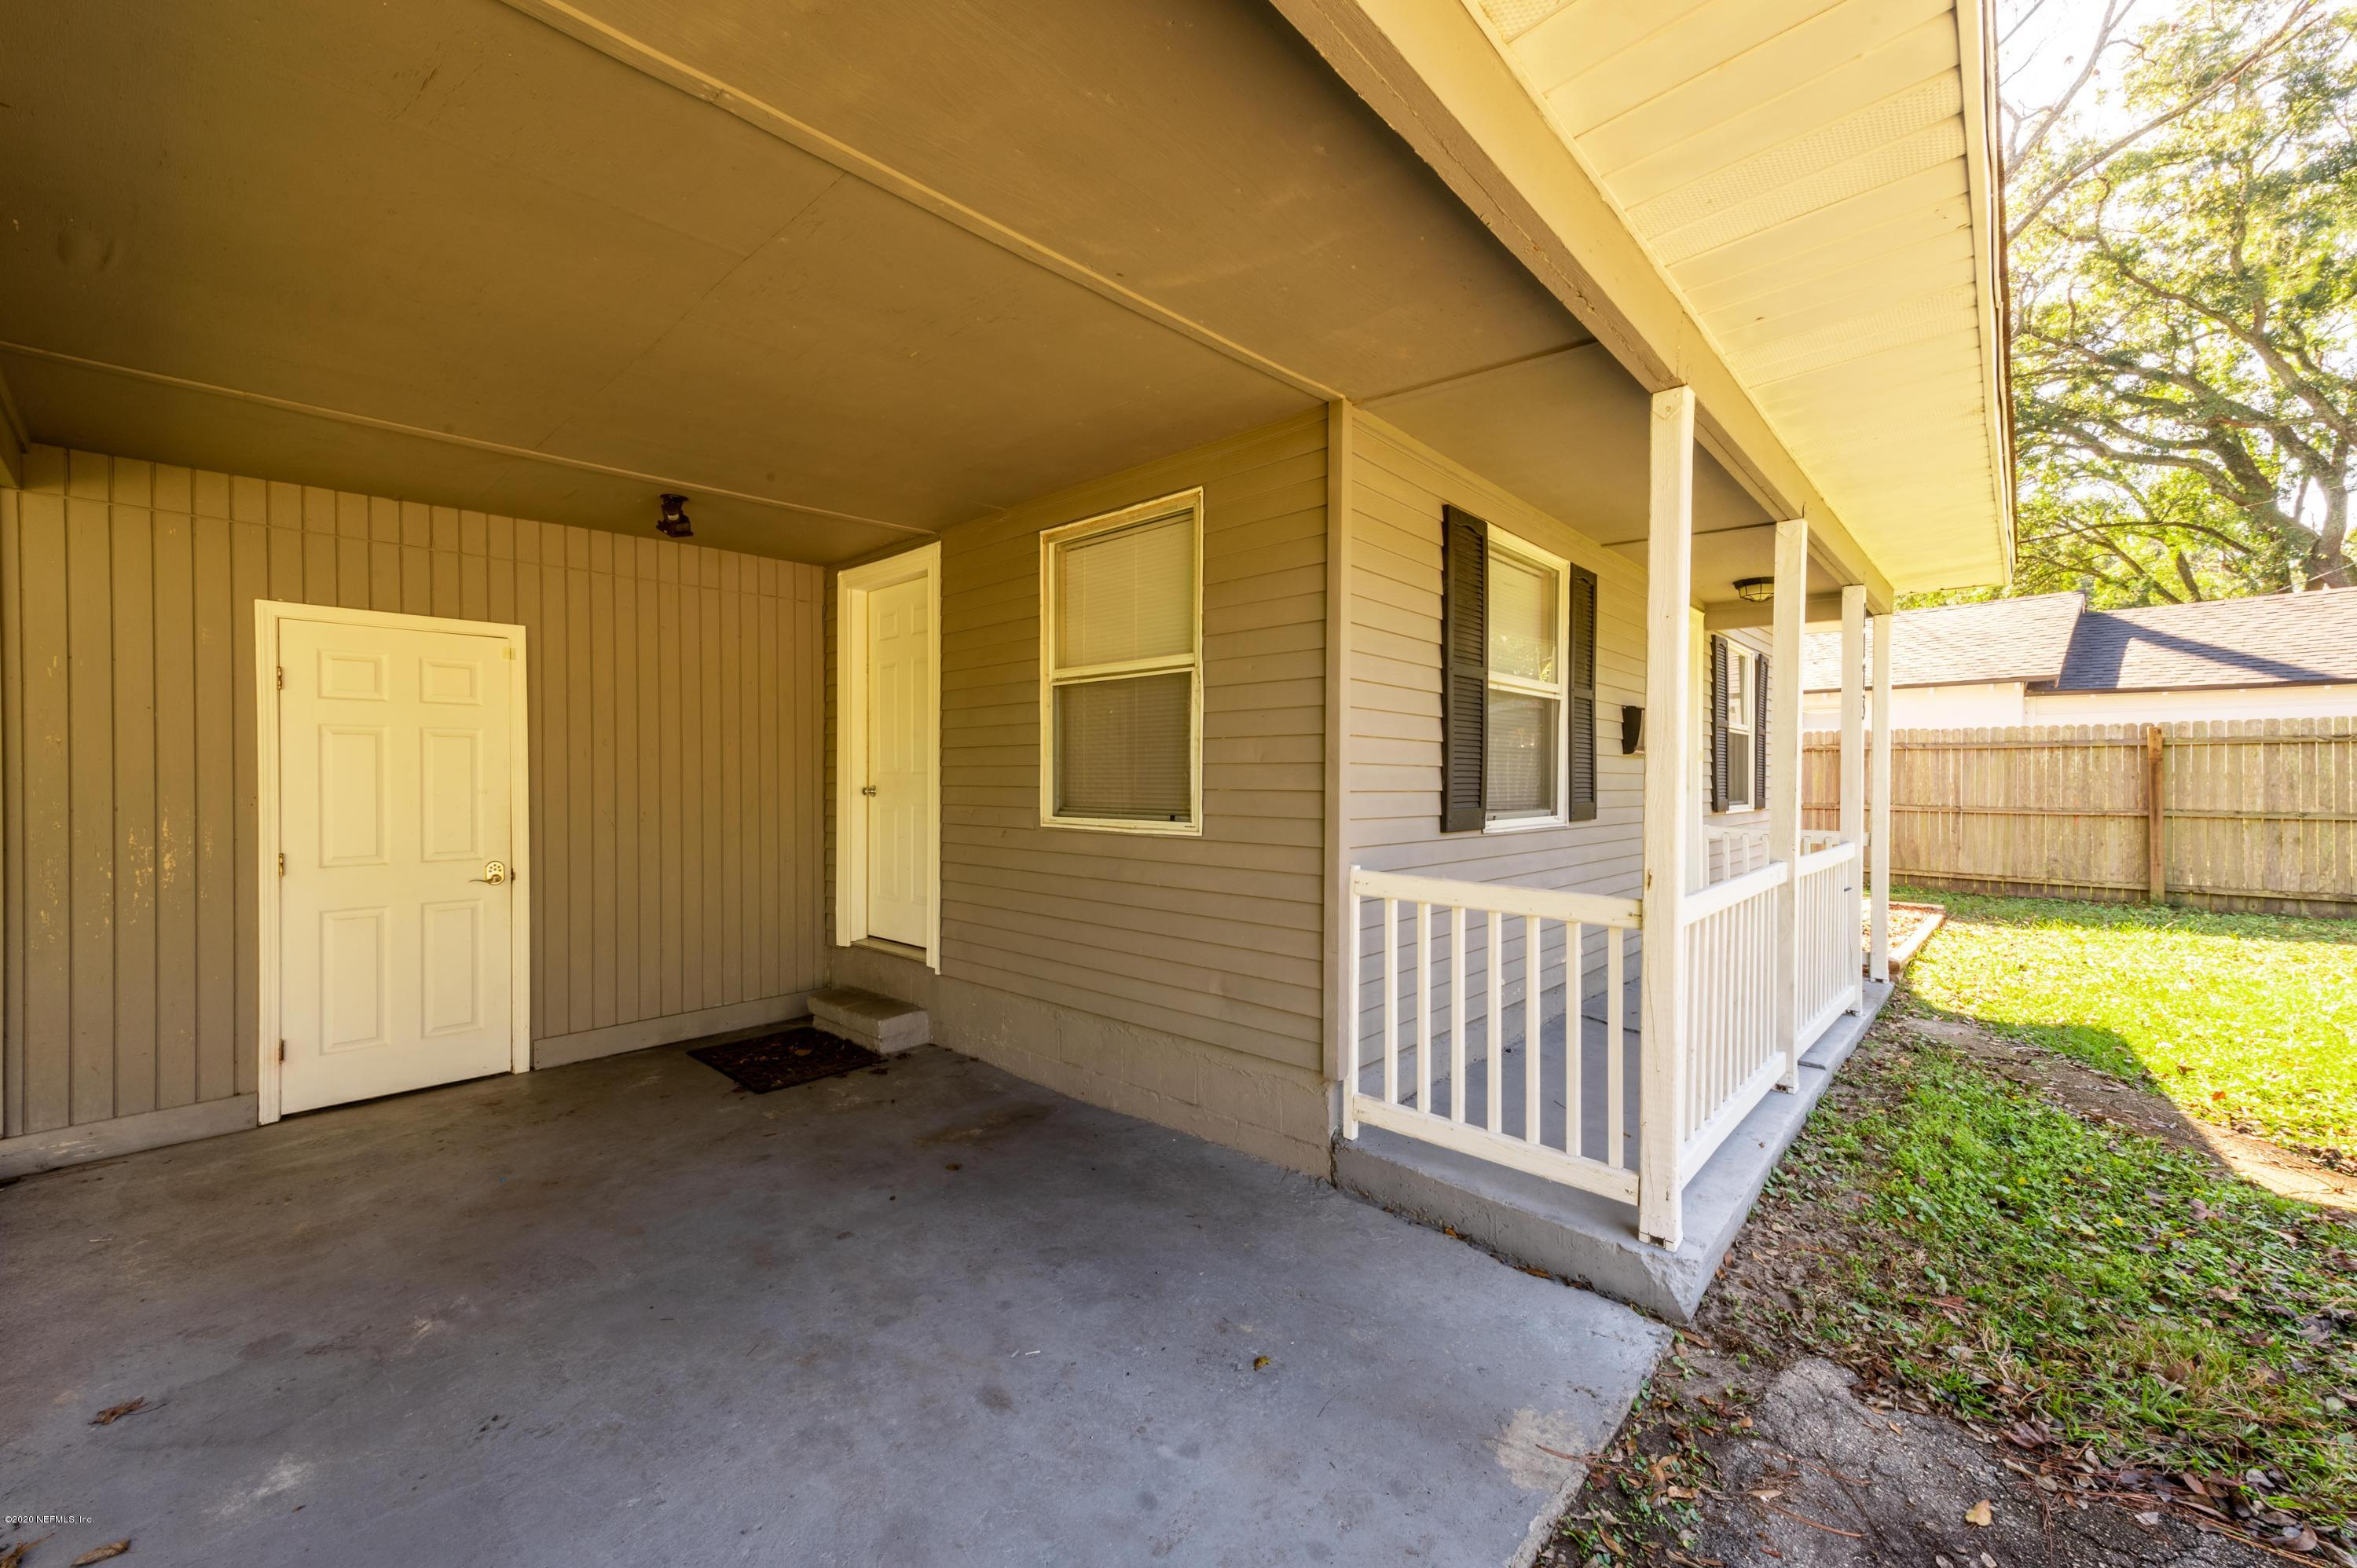 1173 WYCOFF, JACKSONVILLE, FLORIDA 32205, 2 Bedrooms Bedrooms, ,1 BathroomBathrooms,Residential,For sale,WYCOFF,1082104